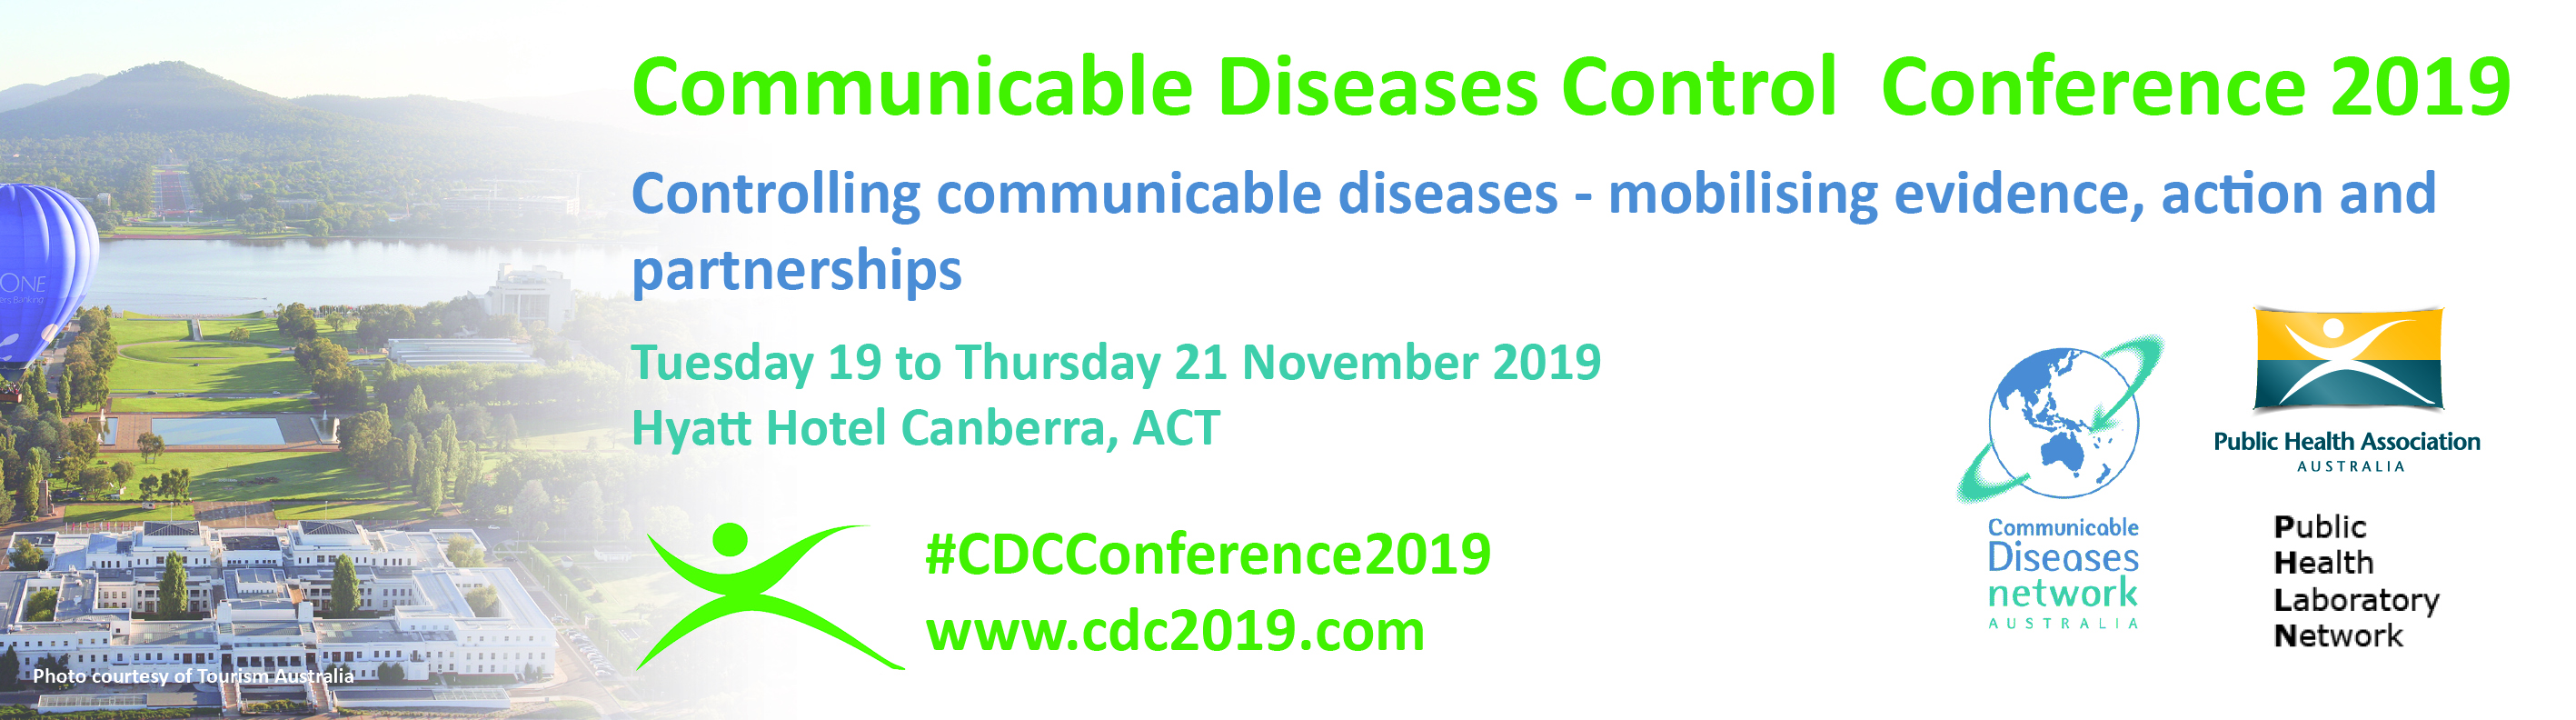 Communicable Diseases Control Conference 2019 - Events - Public